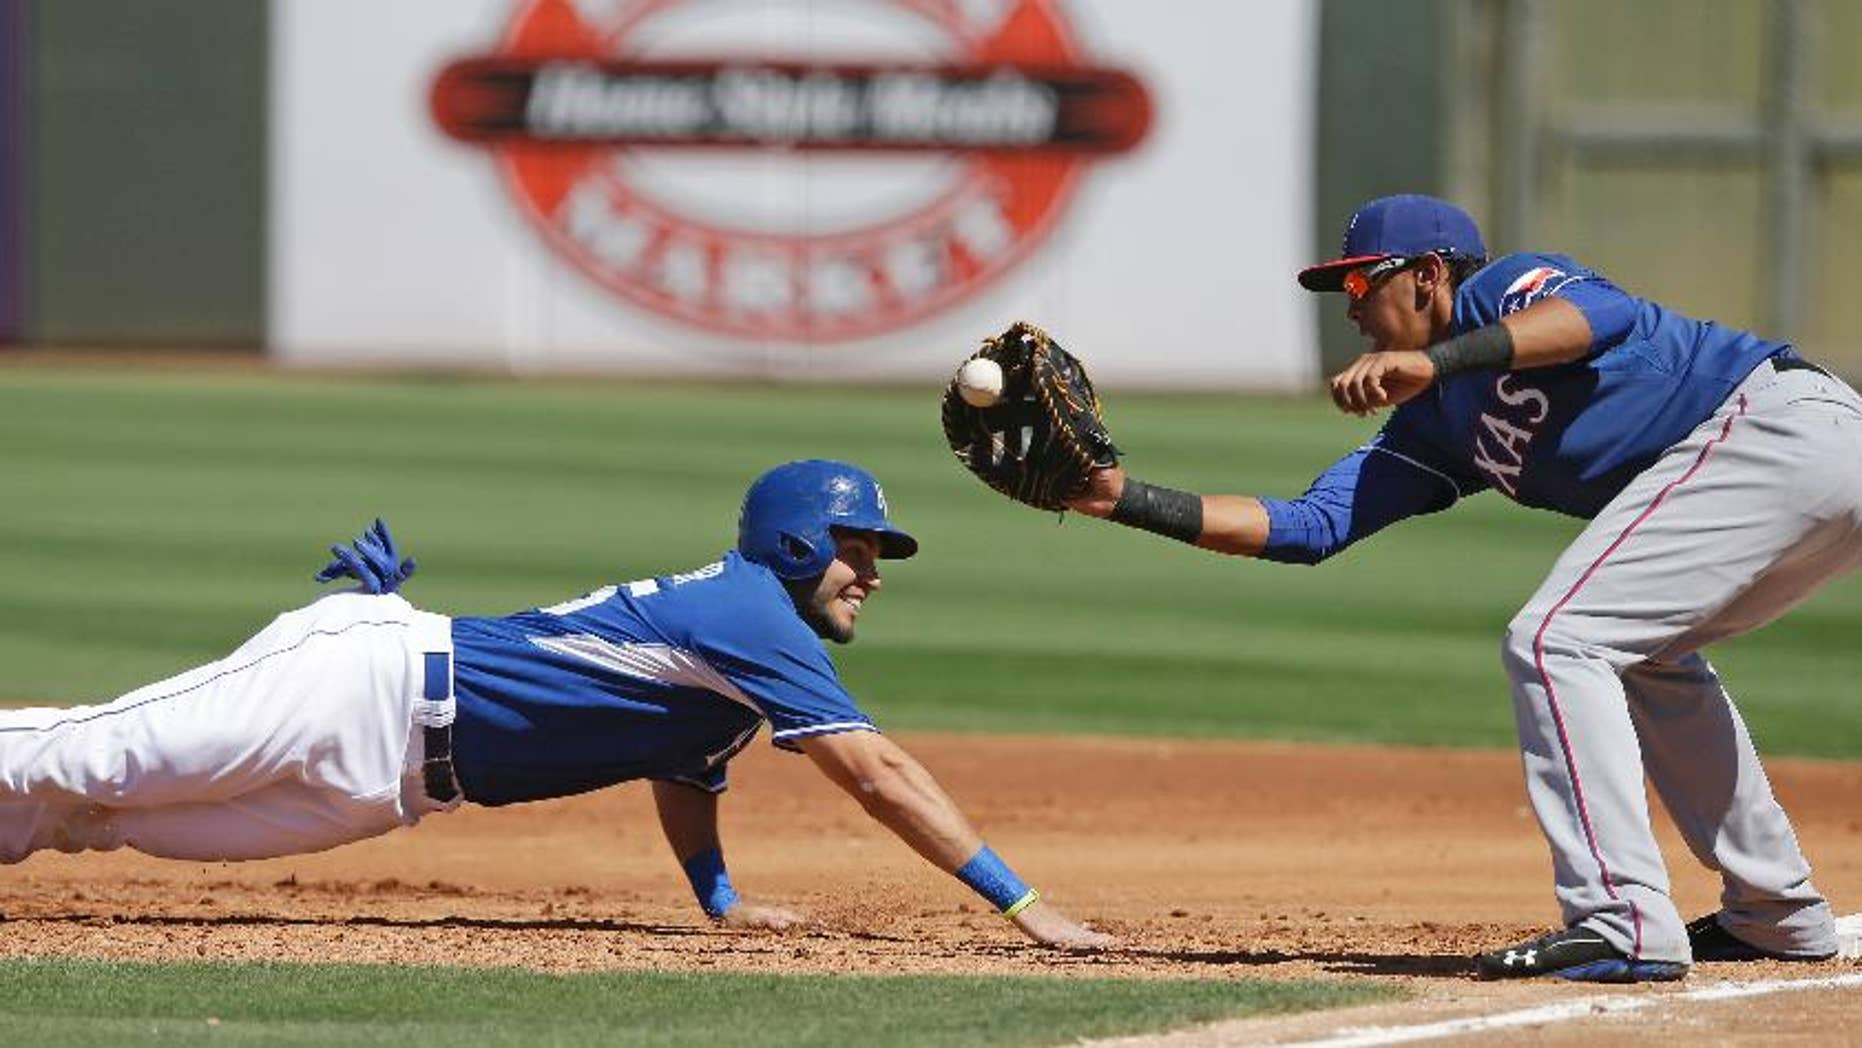 Kansas City Royals' Eric Hosmer is picked off at first base as Texas Rangers' Ronald Guzman applies the tag during the second inning of a spring exhibition baseball game, Saturday, March 22, 2014, in Surprise, Ariz. (AP Photo/Darron Cummings)